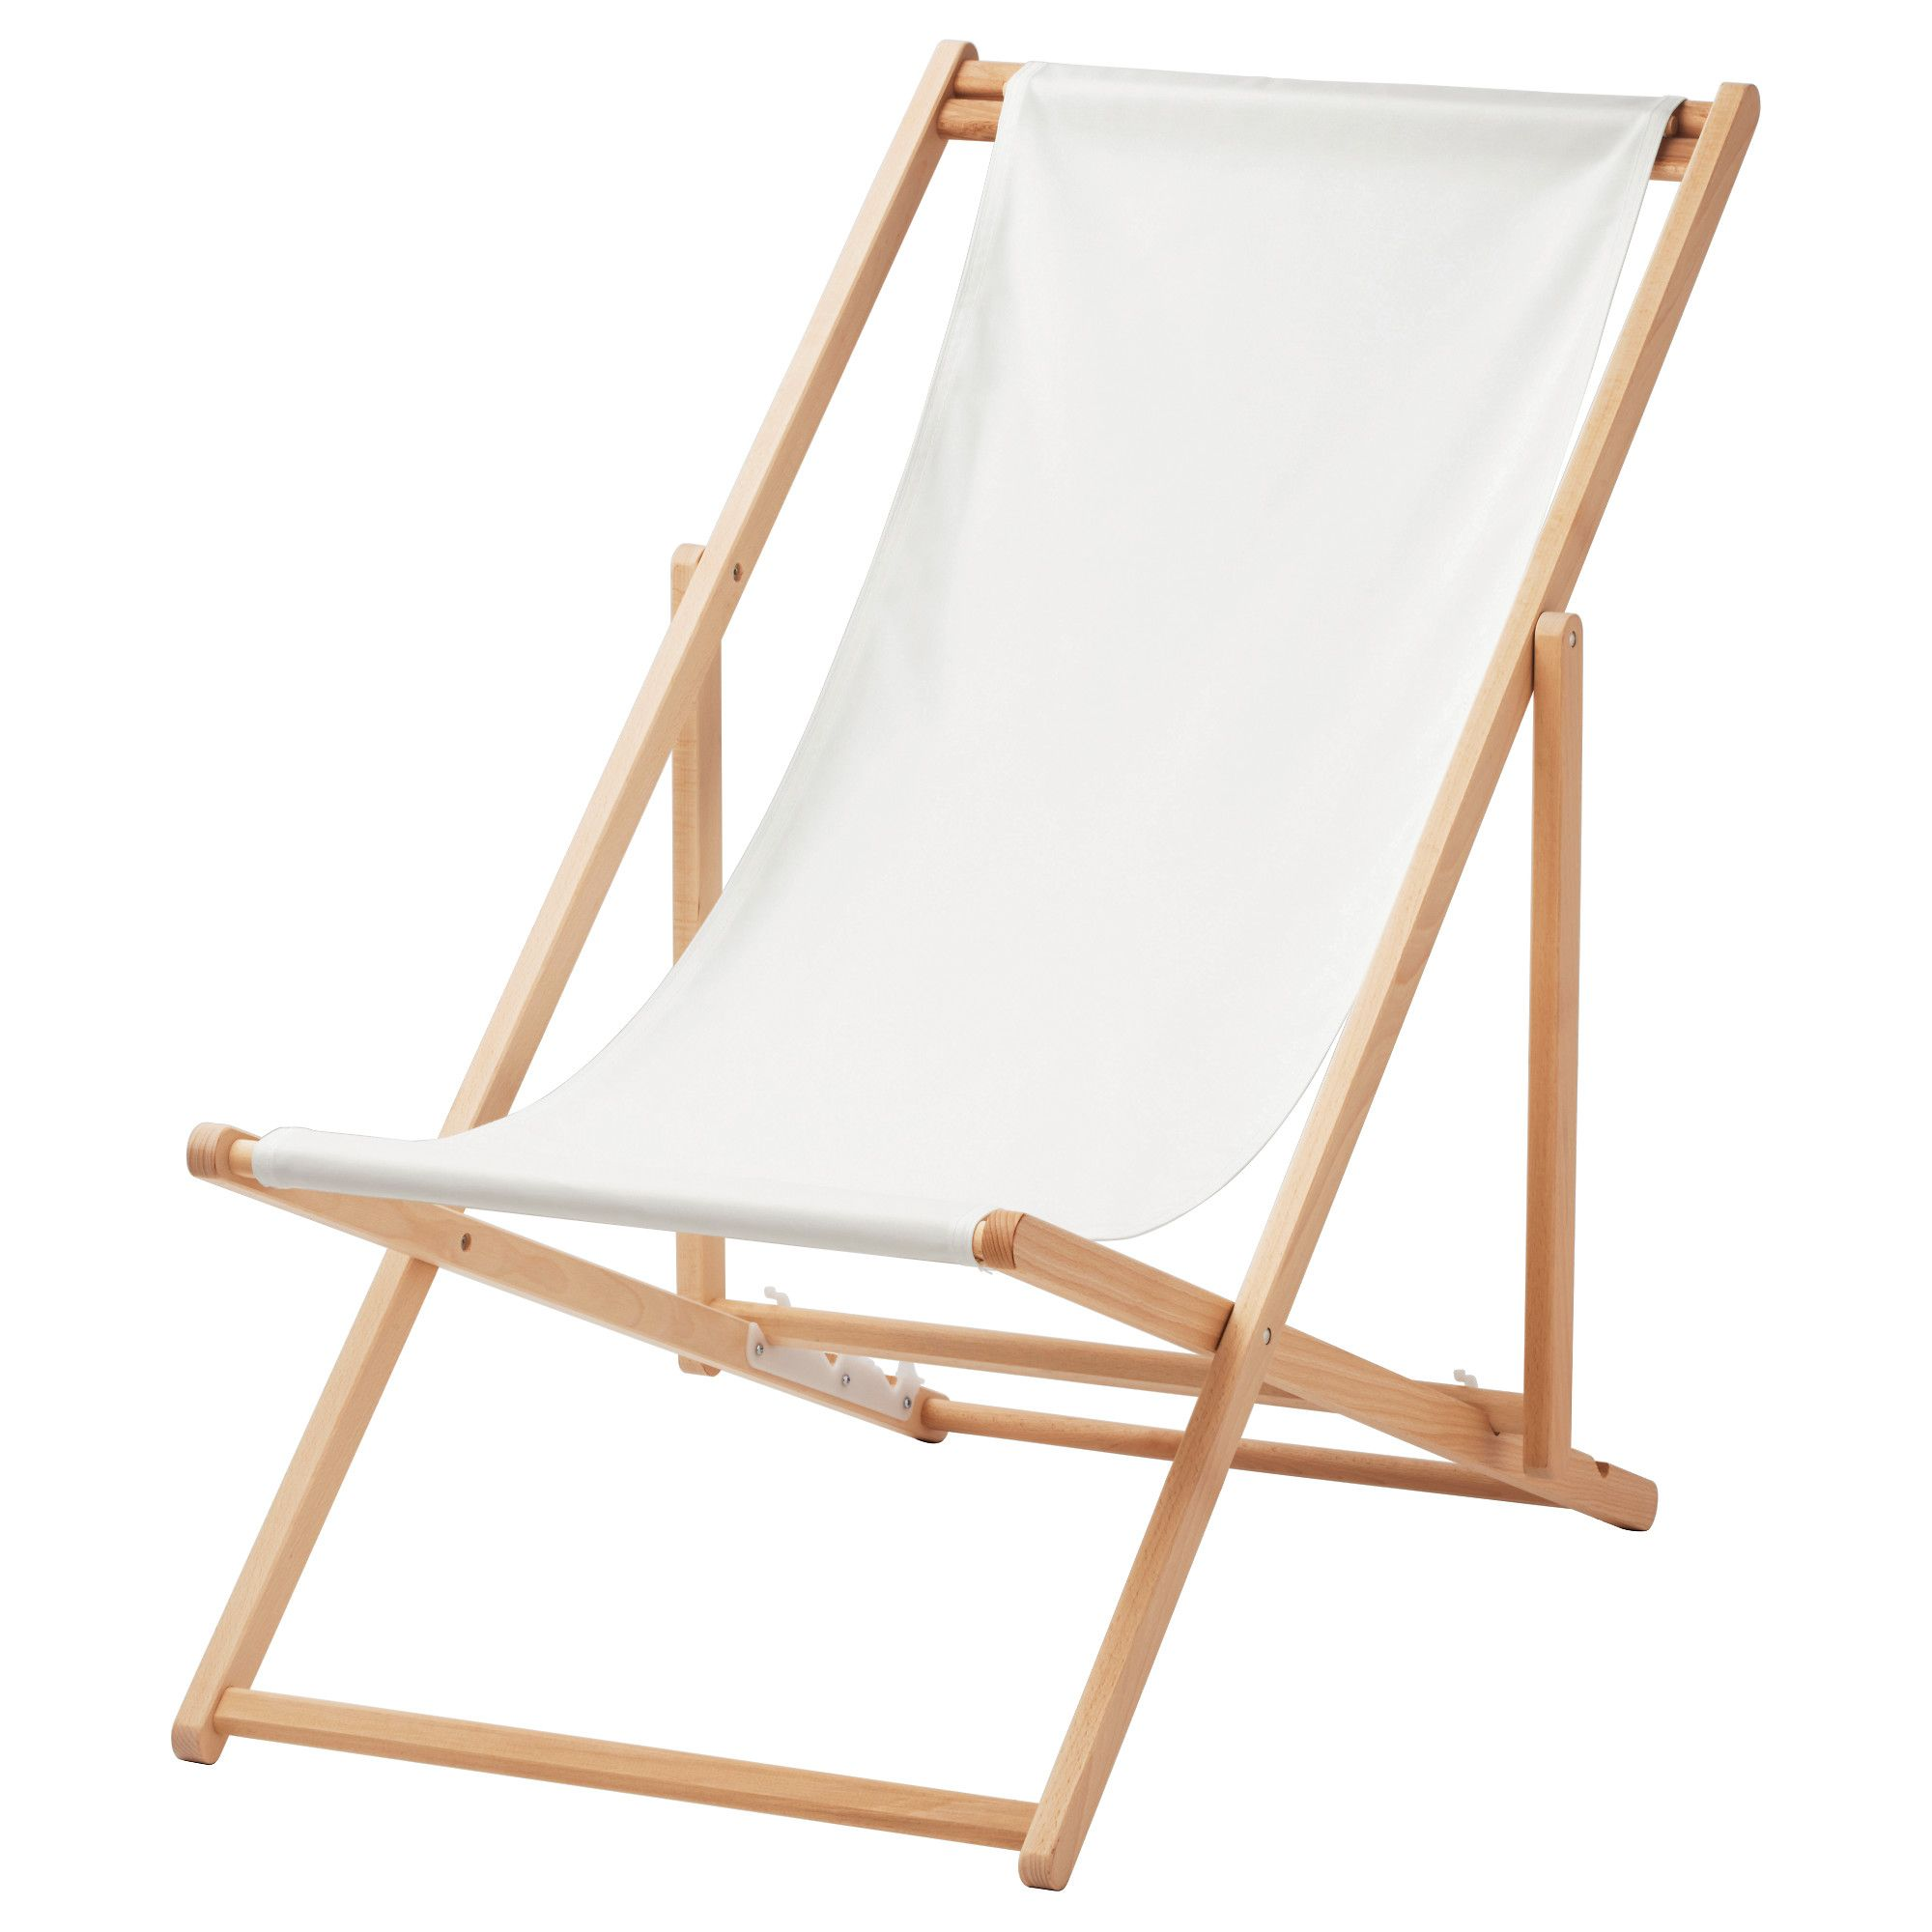 Ikea Us Furniture And Home Furnishings Beach Chairs Ikea Outdoor Outdoor Chairs